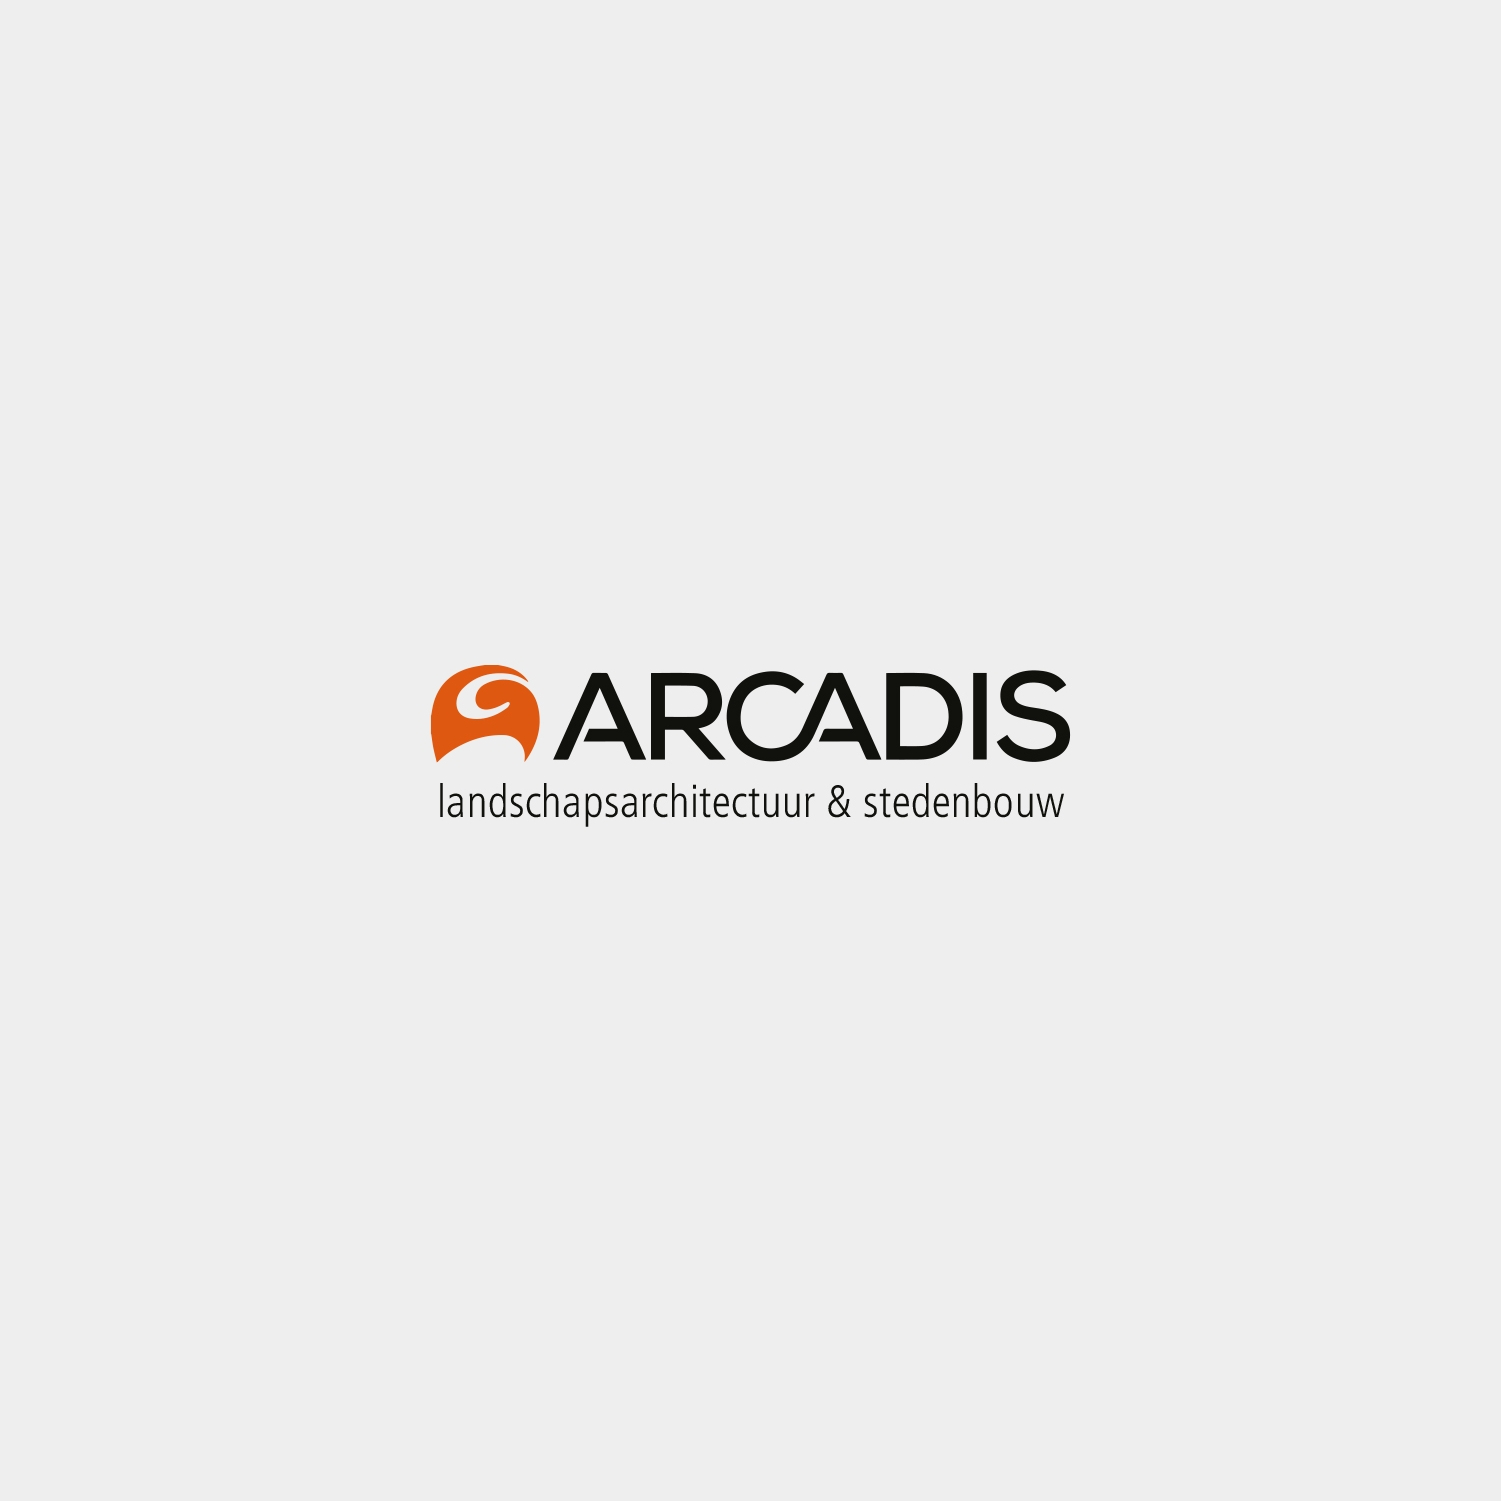 Arcadis - ....Arcadis is a global Design & Consultancy firm for natural and built assets. Arcadis landscape architecture & urbanism is responsible for the design and planting schemes of the roof gardens. They believe landscape architecture is a search for visionary designs that capture not only the eye, but also the heart...Arcadis is een internationaal design & consultancy bureau dat werkt aan duurzame oplossingen voor de natuurlijke en gebouwde omgeving. Arcadis landschapsarchitectuur & stedenbouw is verantwoordelijk voor het ontwerp, de inrichting en het aanplanten van de daktuinen van Wonderwoods. Met hun visionaire ontwerp maken ze Utrecht niet alleen mooier; ze geven de stad een groen hart.....